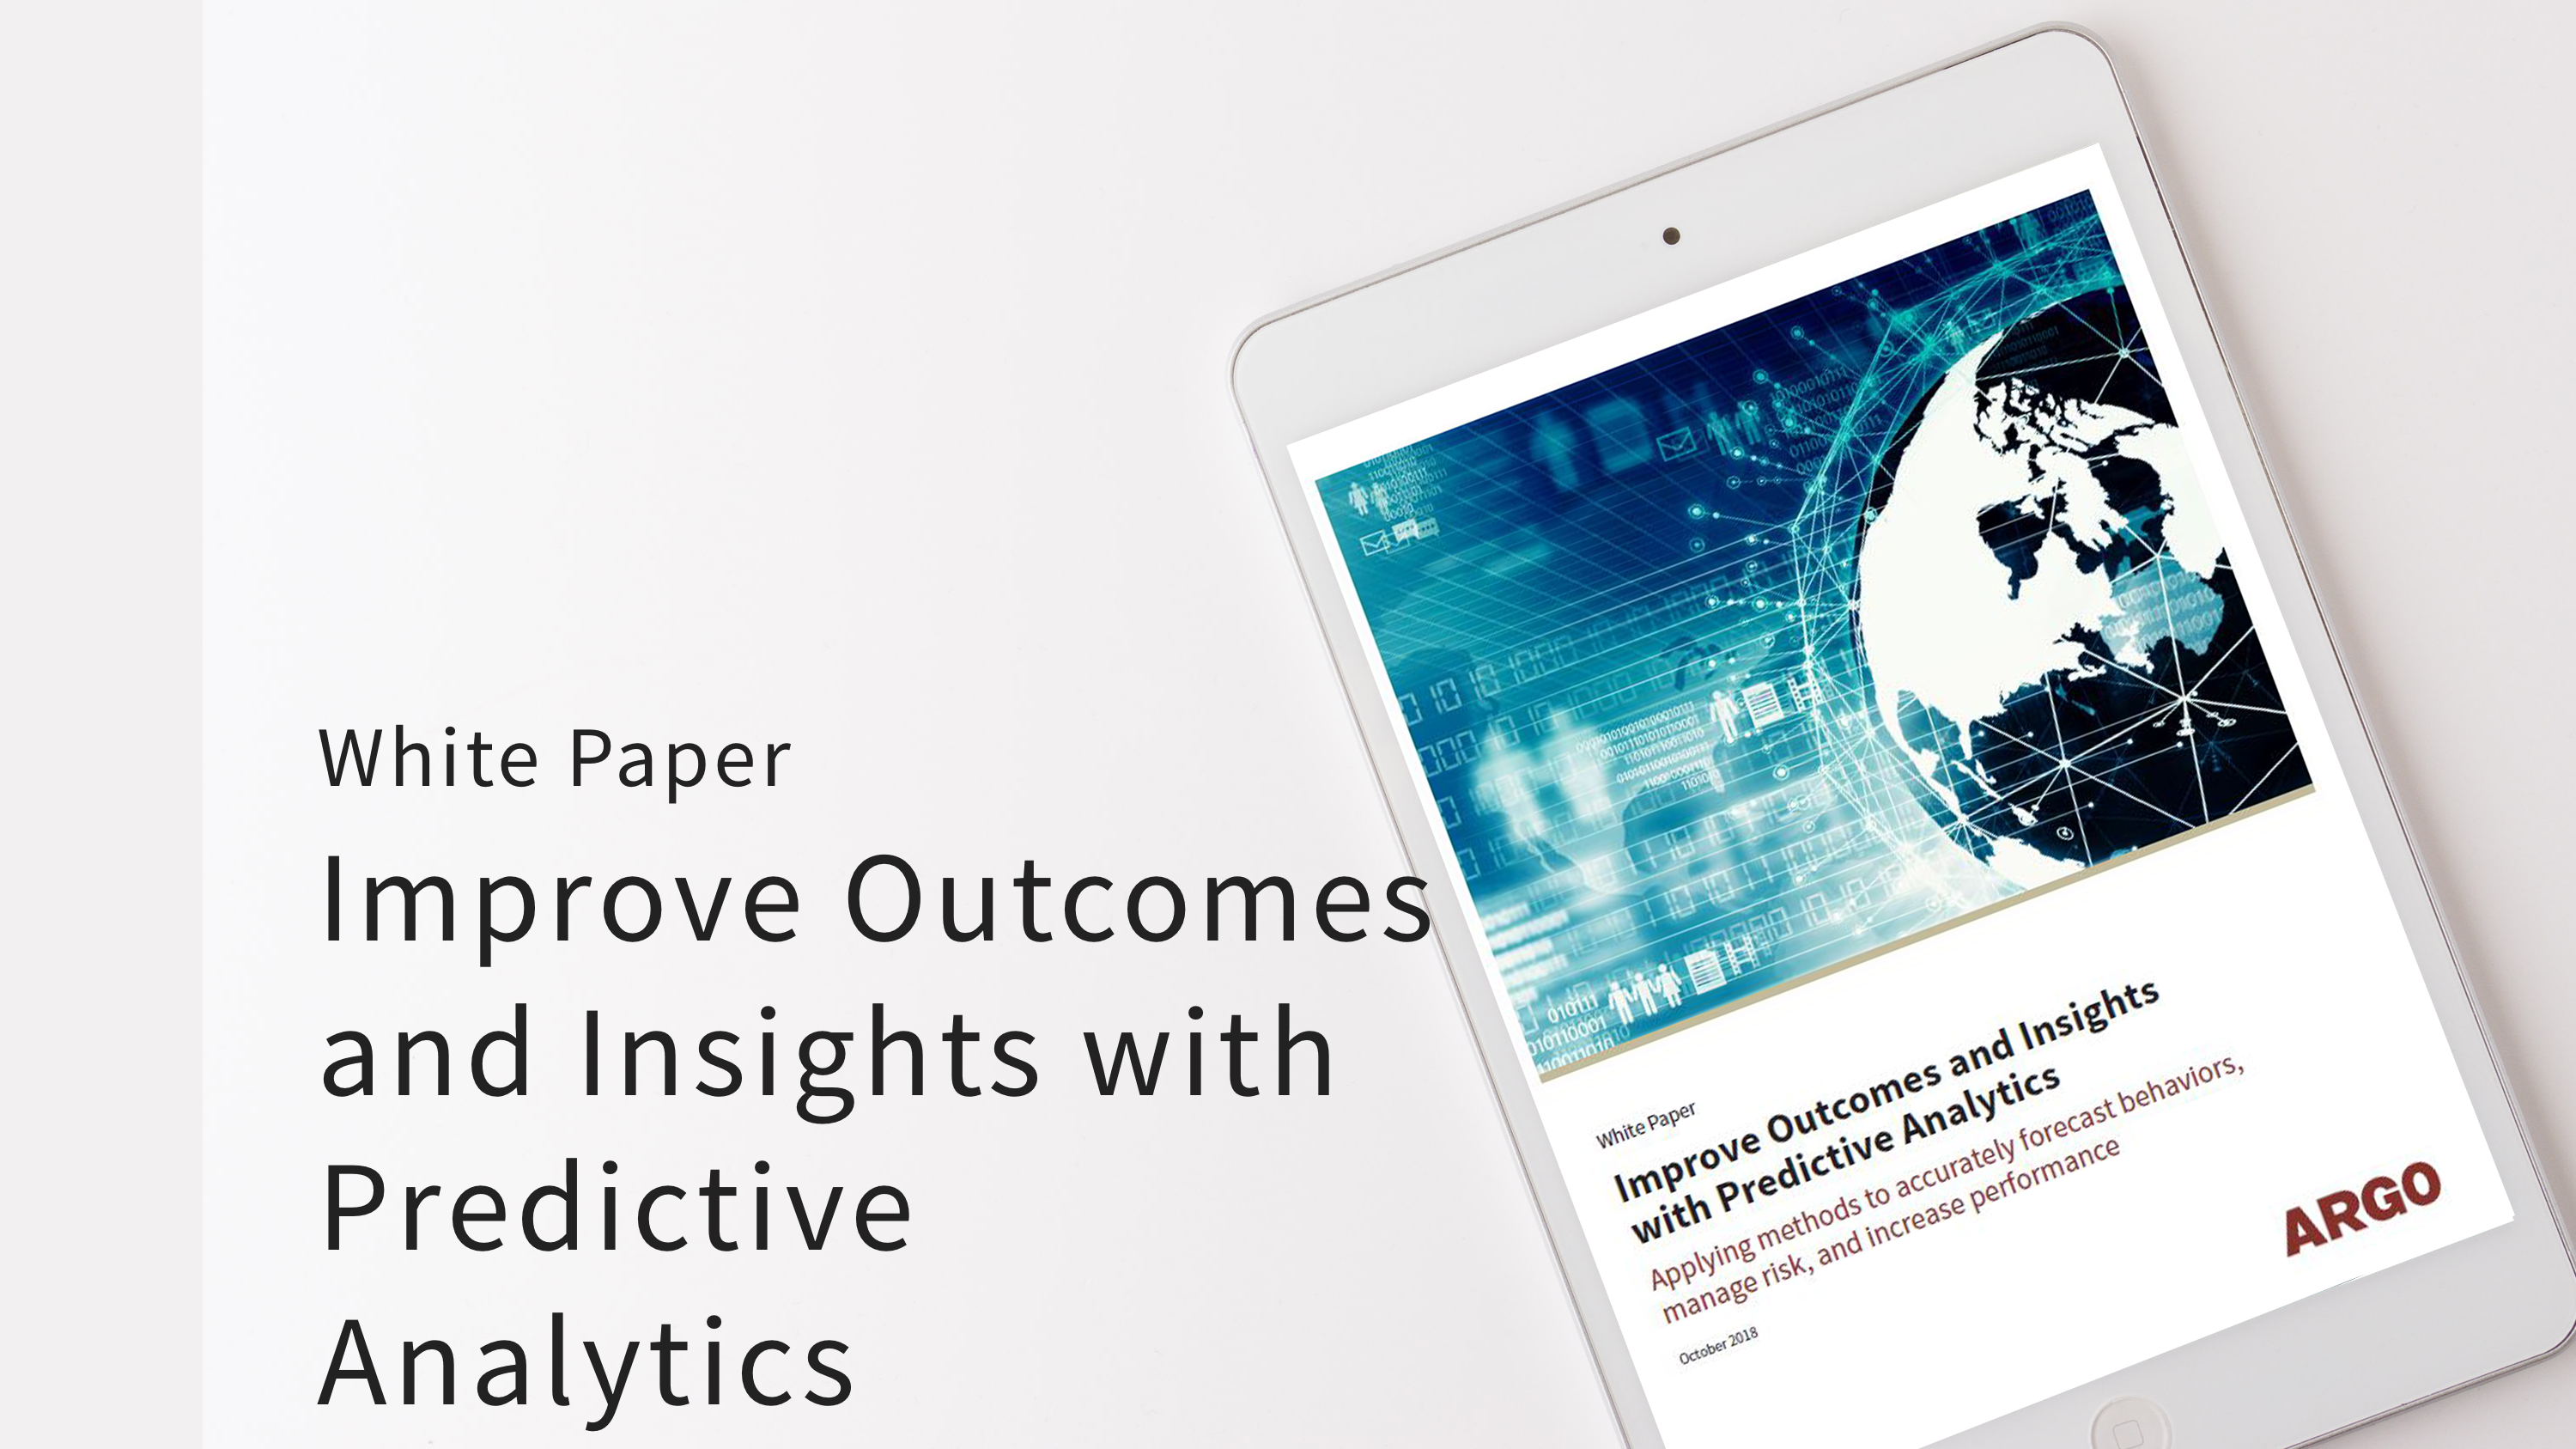 WP Improve Outcomes and Insights